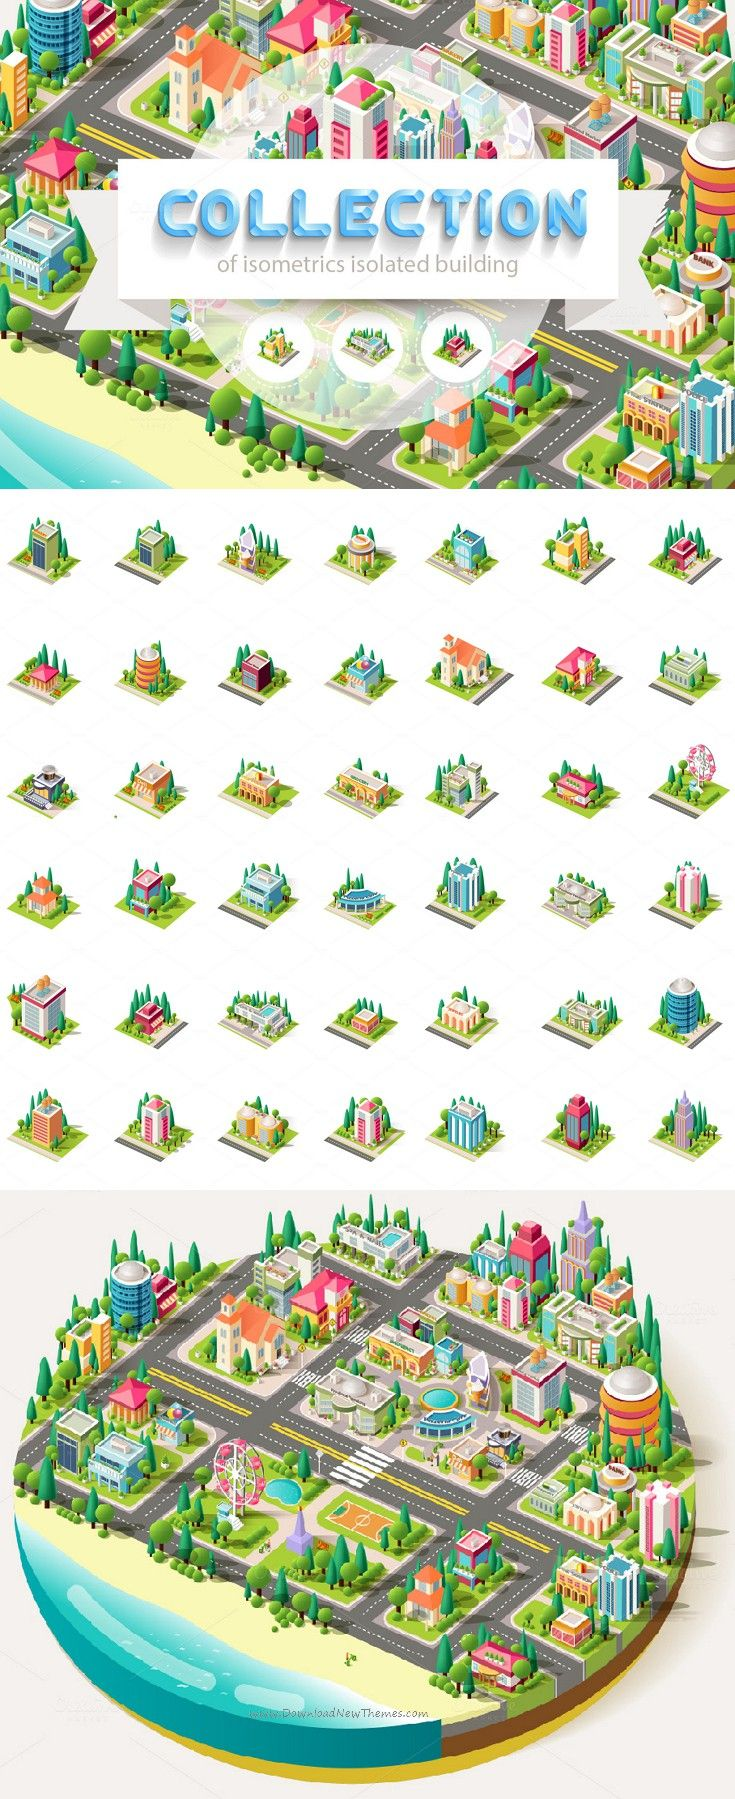 Big set of isometrics building #graphics #Vector #illustrations #building with arranged territory for business center info graphics elements on a white background download now➩ https://creativemarket.com/Art_Boutique/936056-Big-set-isometrics-building?u=Datasata